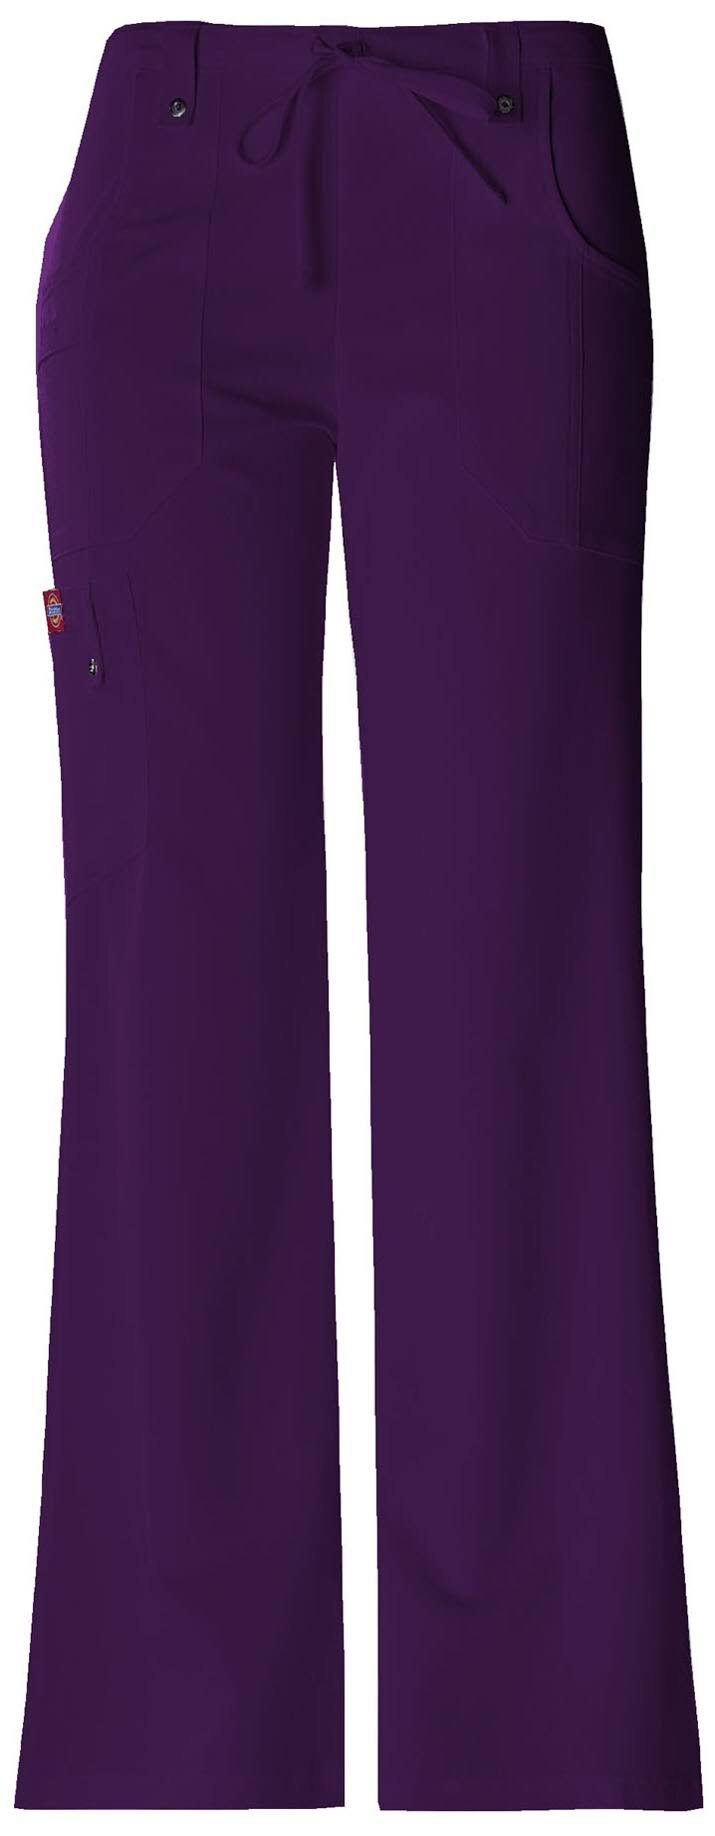 Dickies Women's Xtreme Stretch Fit Drawstring Flare Leg Pants - Eggplant, XSmall